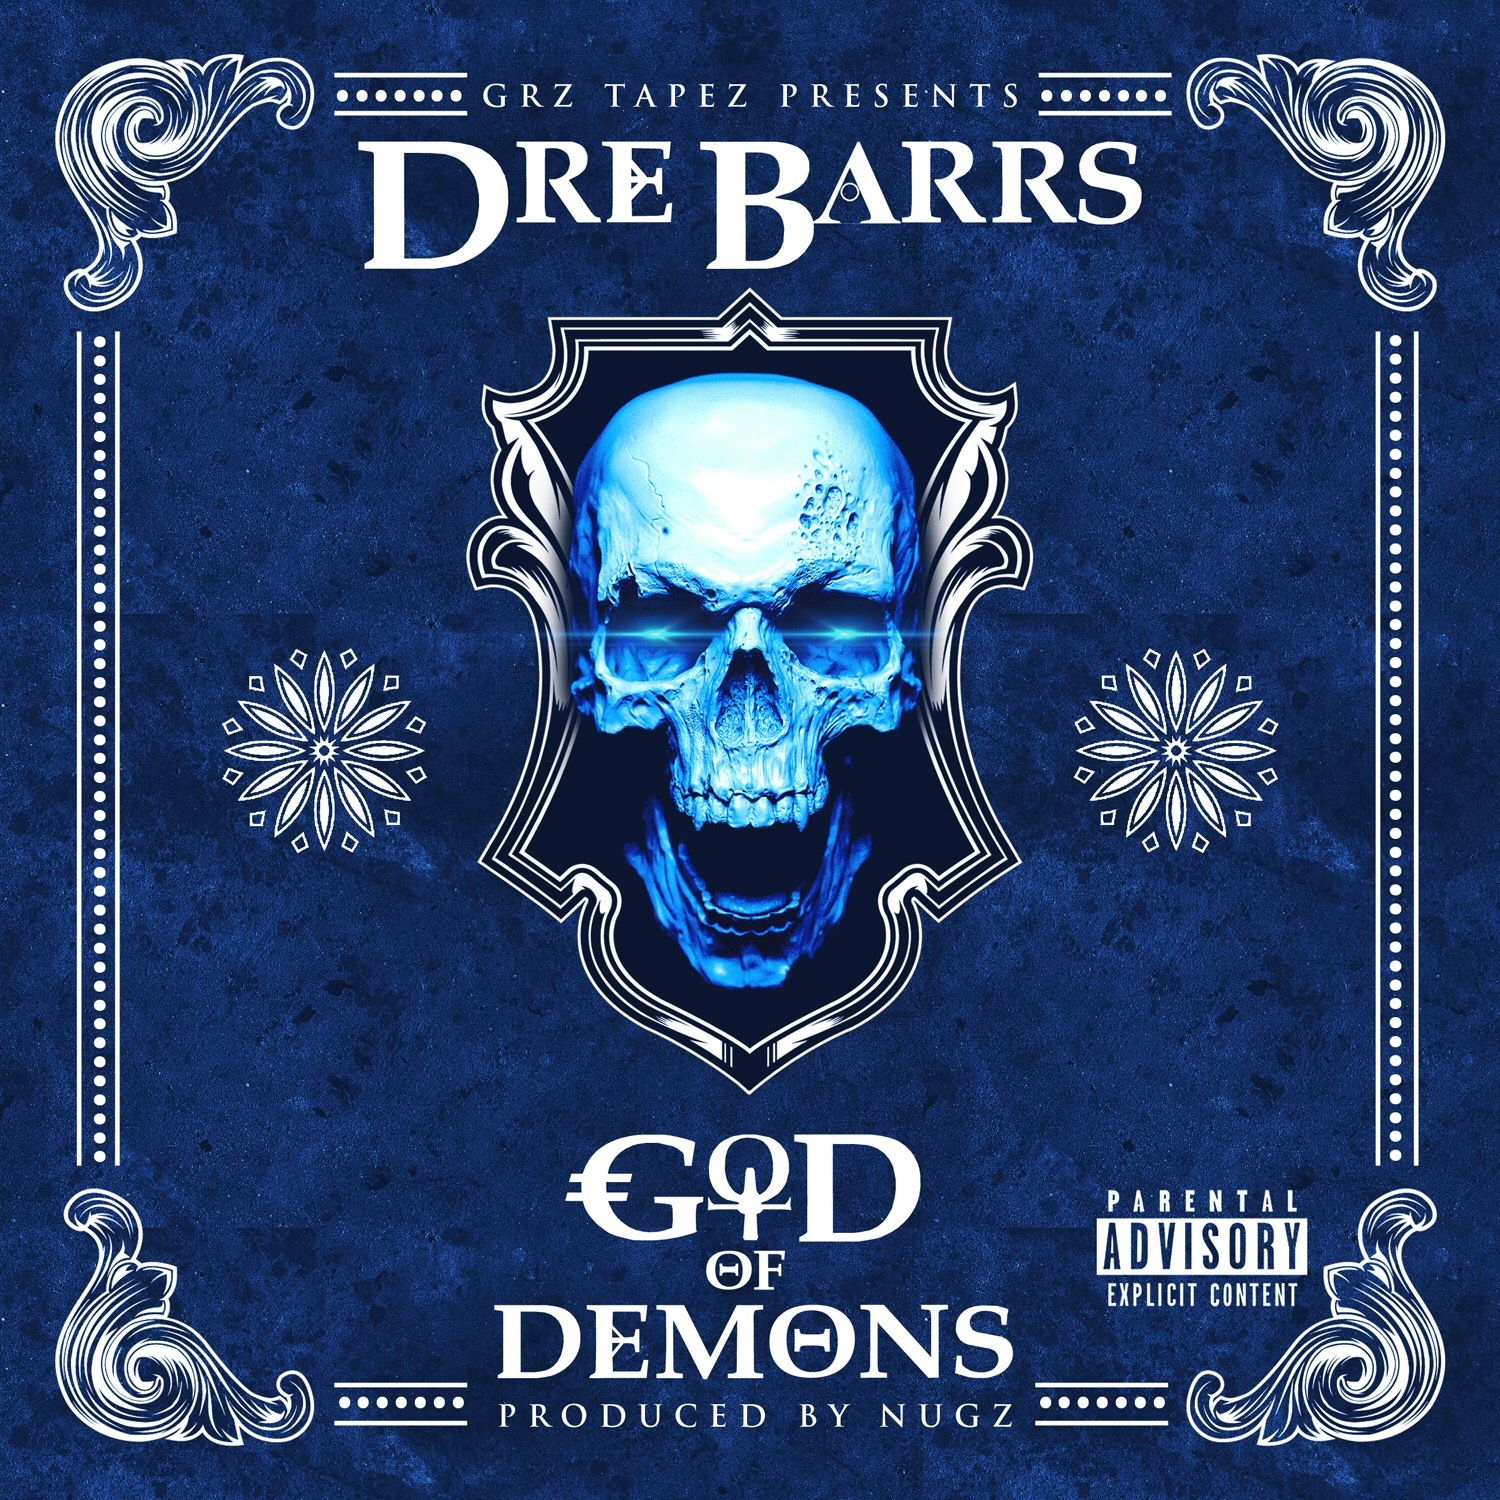 Grz Tapez Presents M3G Dre Barrs God Of Demons Mixtape http://piff.me/d2be42d @grztapez @drebarrs @mr_nugz  #M3G #DREBARRS #RUFFRYDERS #RR #NUGZBEATZ #GRZTAPEZ #STR888FIAAA #HIPHOP